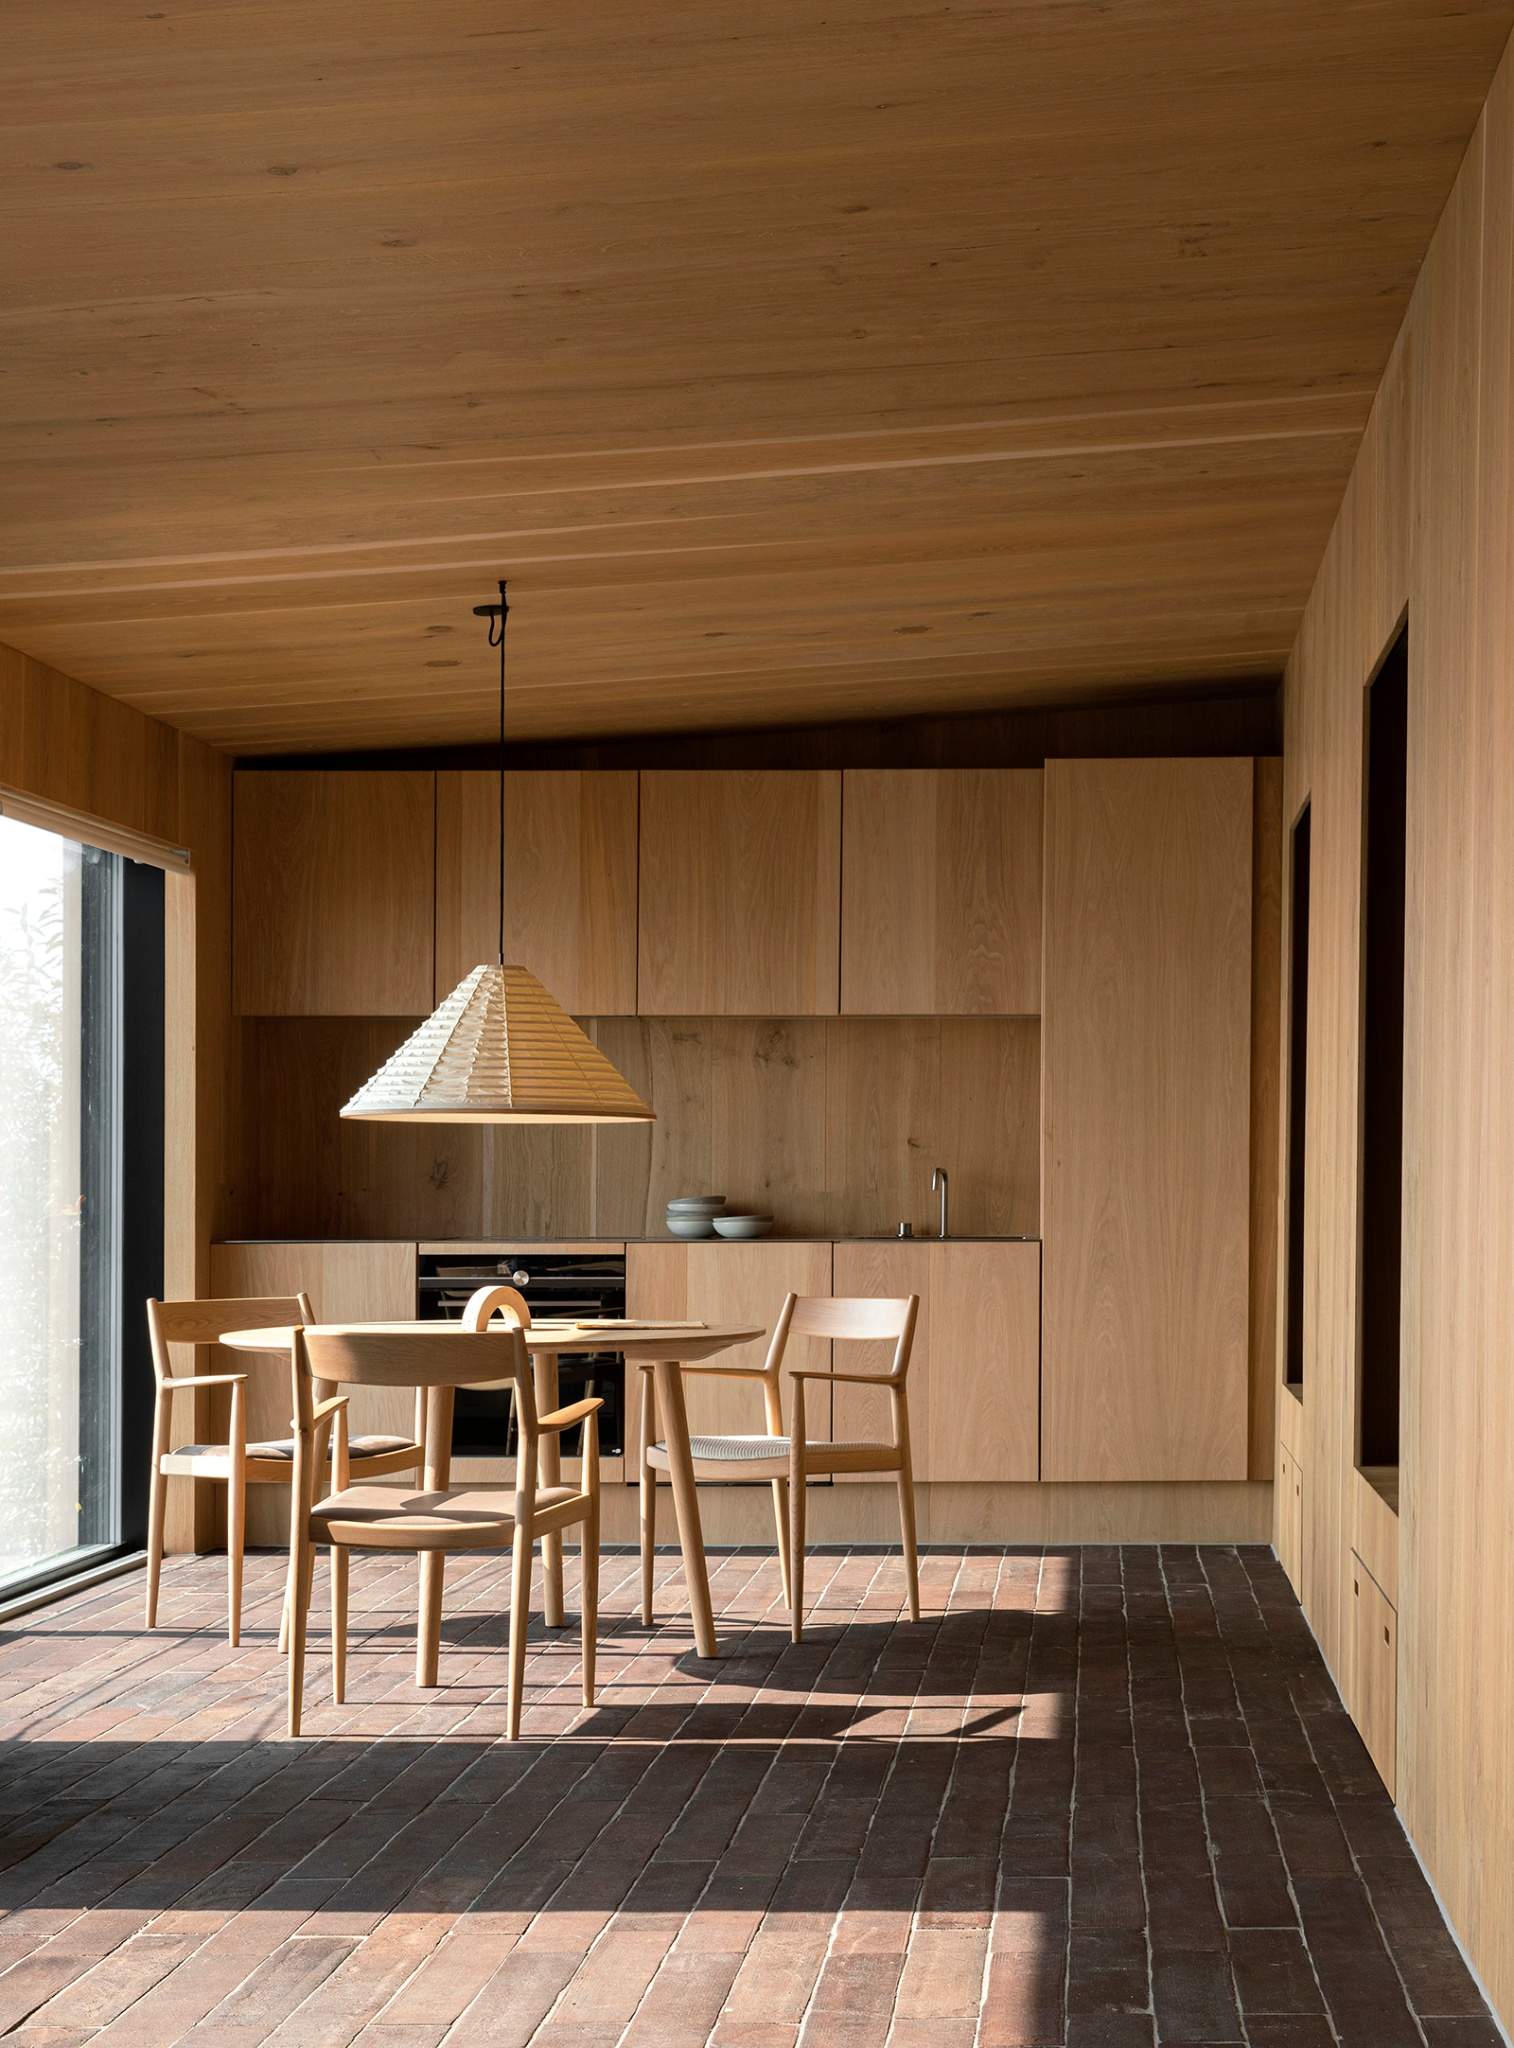 NORM_ARCHITECTS_FJORD_BOAT_HOUSE_18_1600